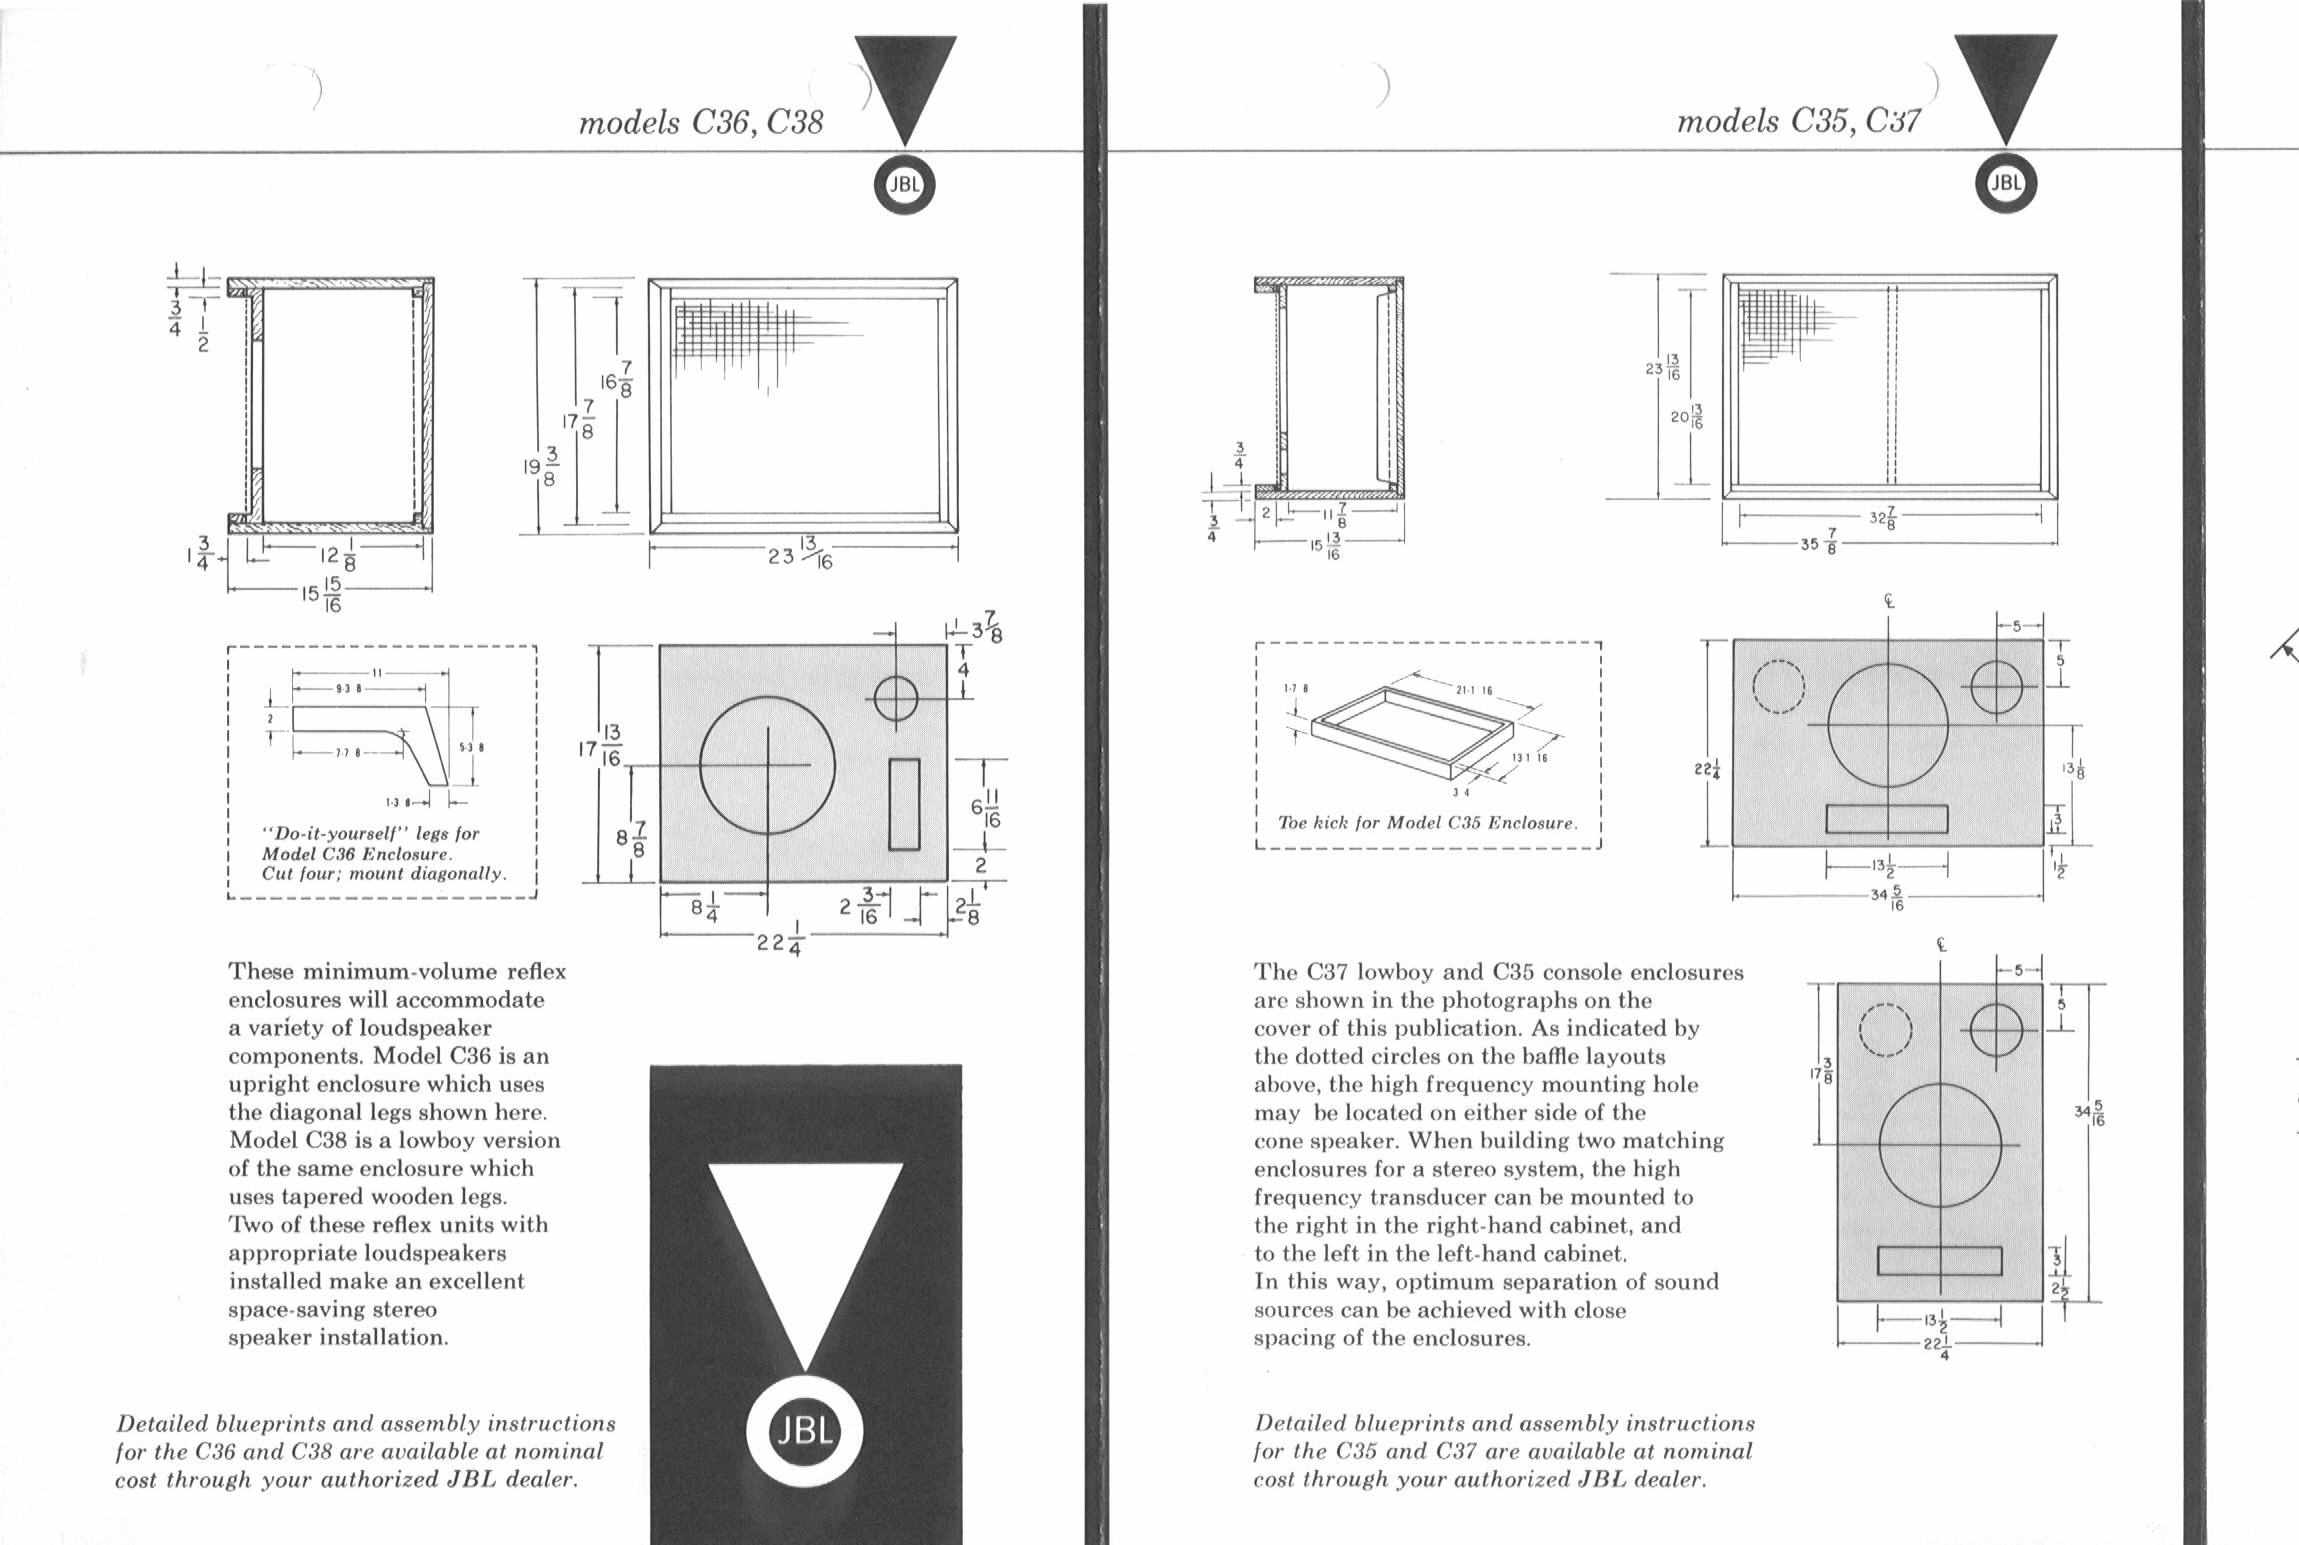 Project With D130 Le175 Potato Masher And N1200 For Low Power Tubes Pin Tango Steps Diagram On Pinterest Http Lansingheritageorg Image C39 Page2